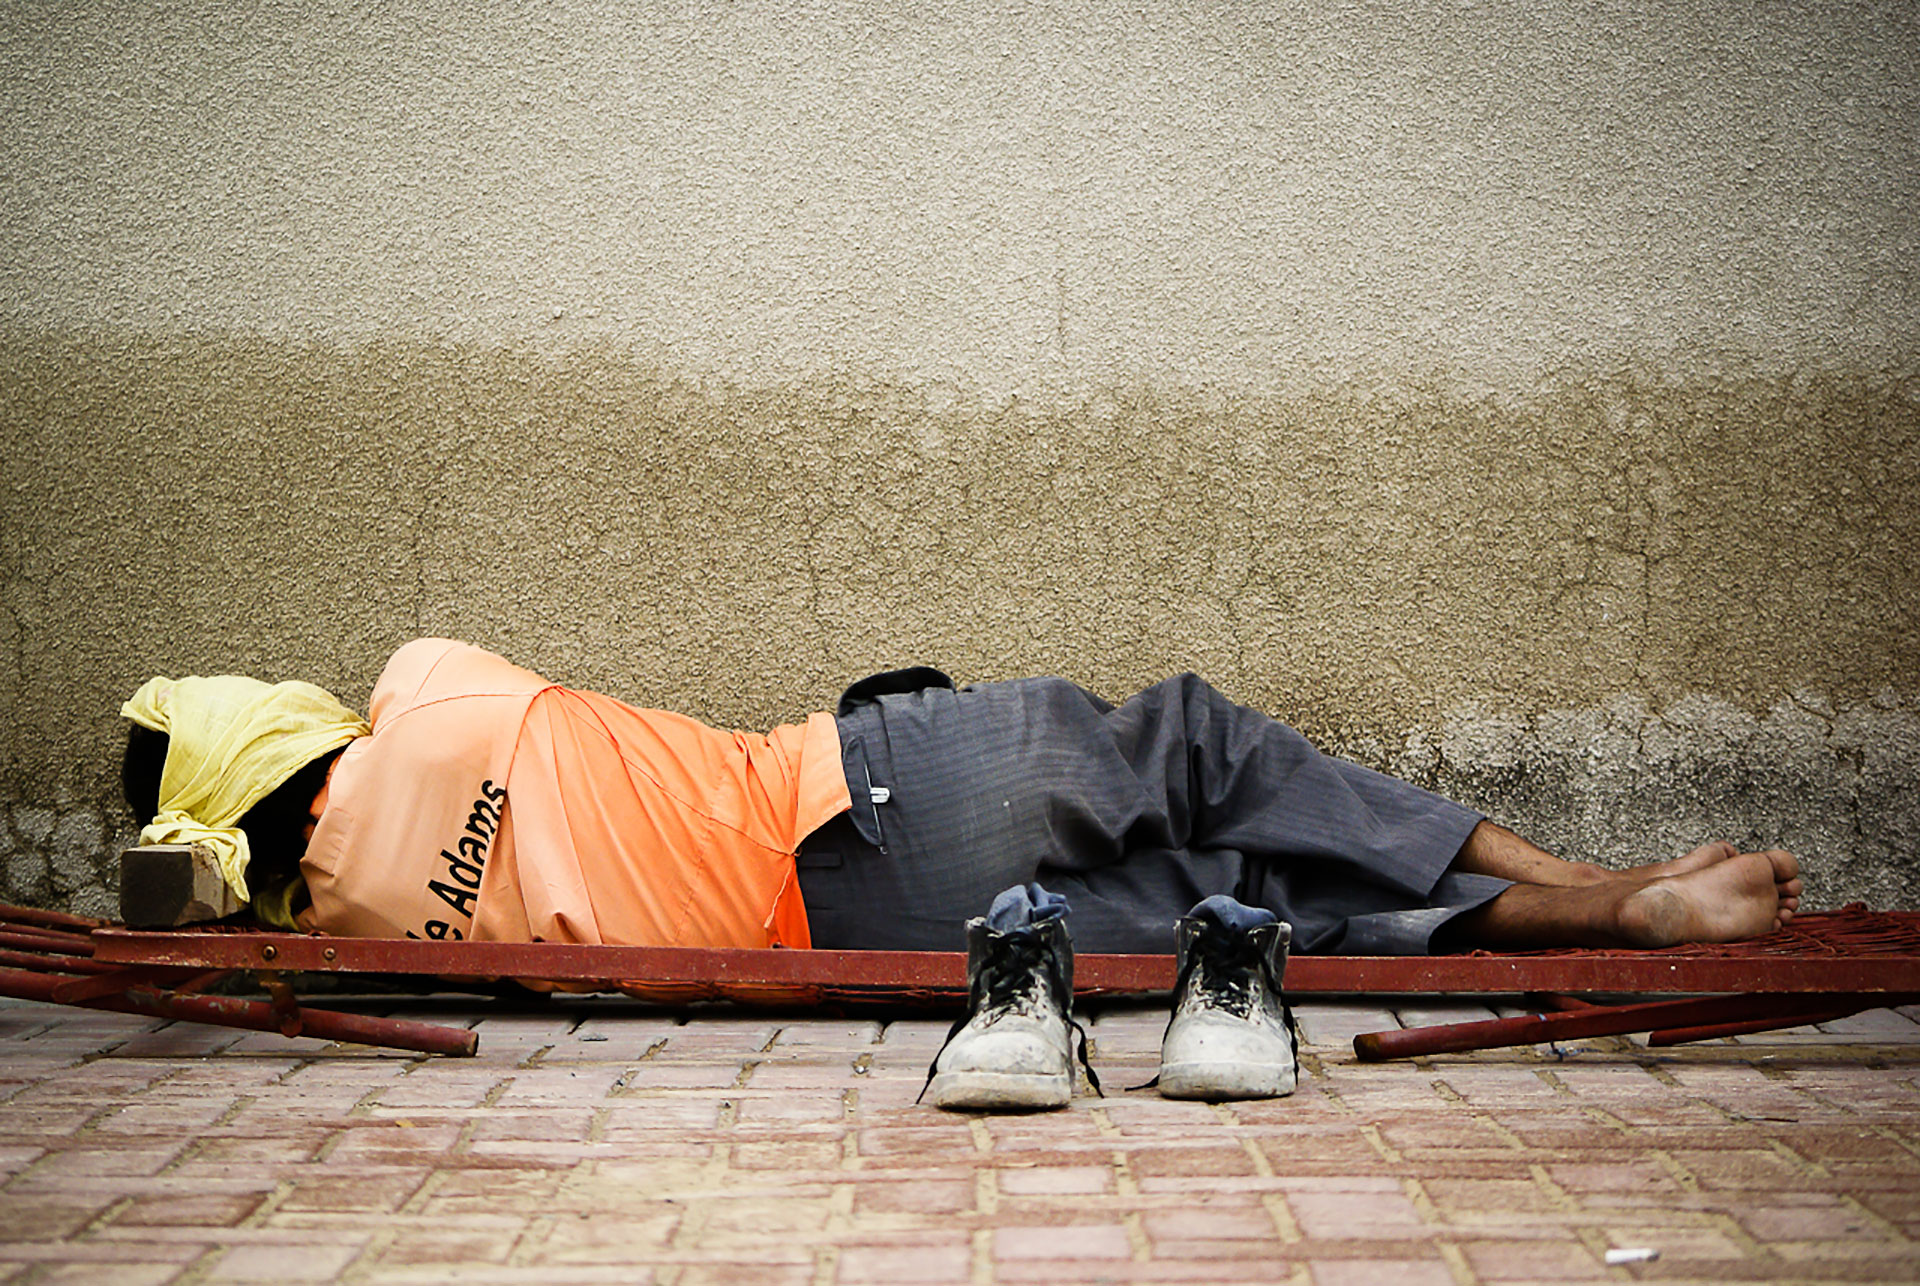 An Indian construction worker asleep on a brick street.